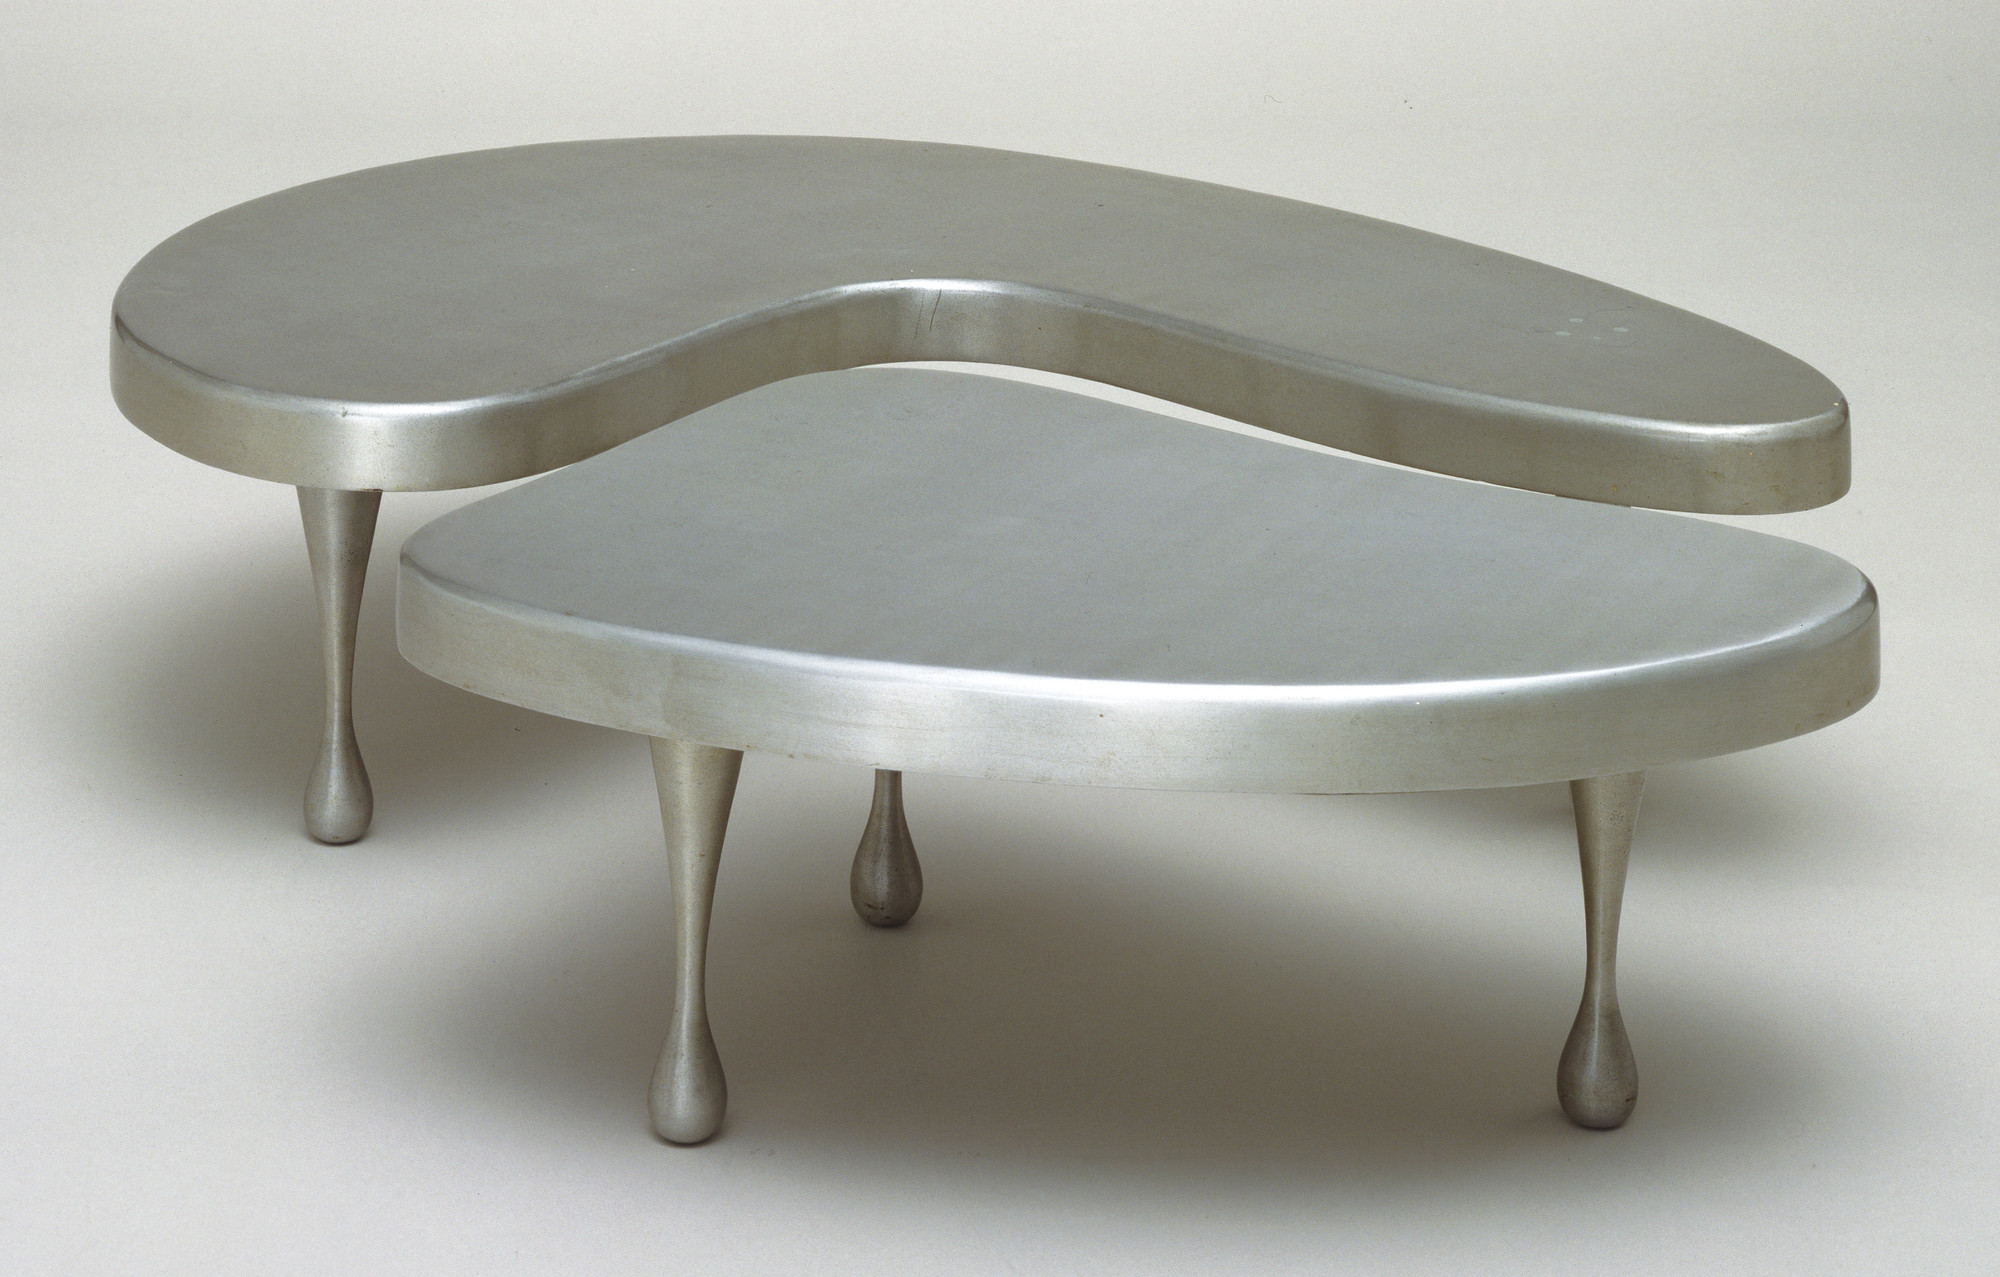 Frederick Kiesler. Nesting Coffee Table. 1935-38